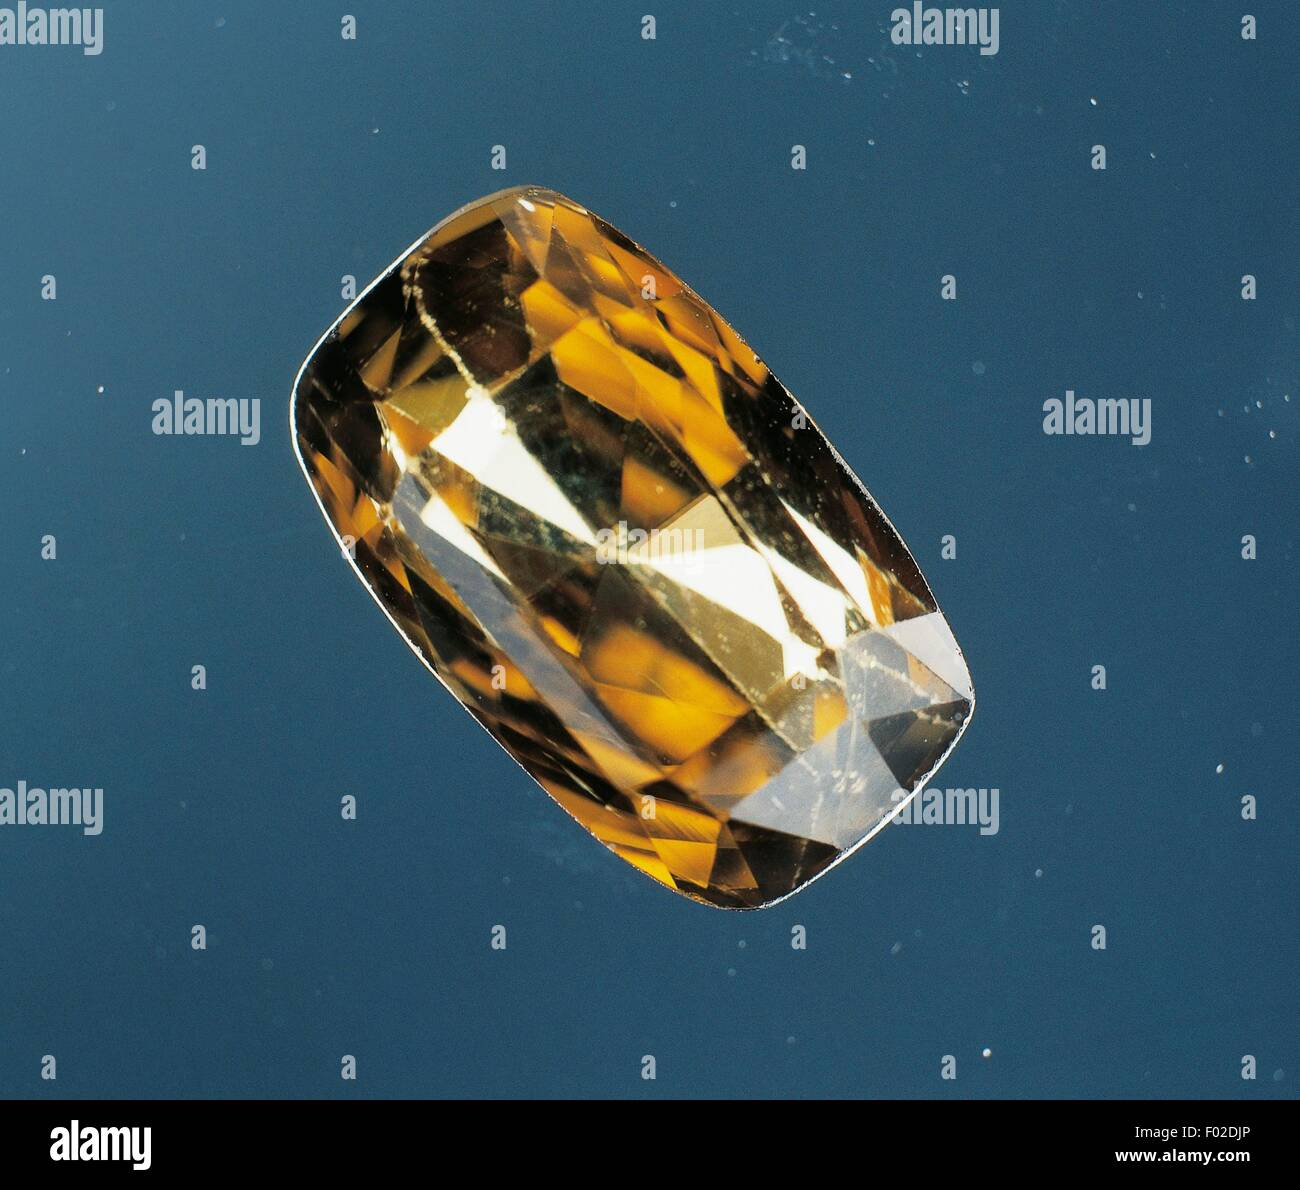 Geology Zircon Natural Condition Stock Photos Yellow Silicate Cut Gem Image